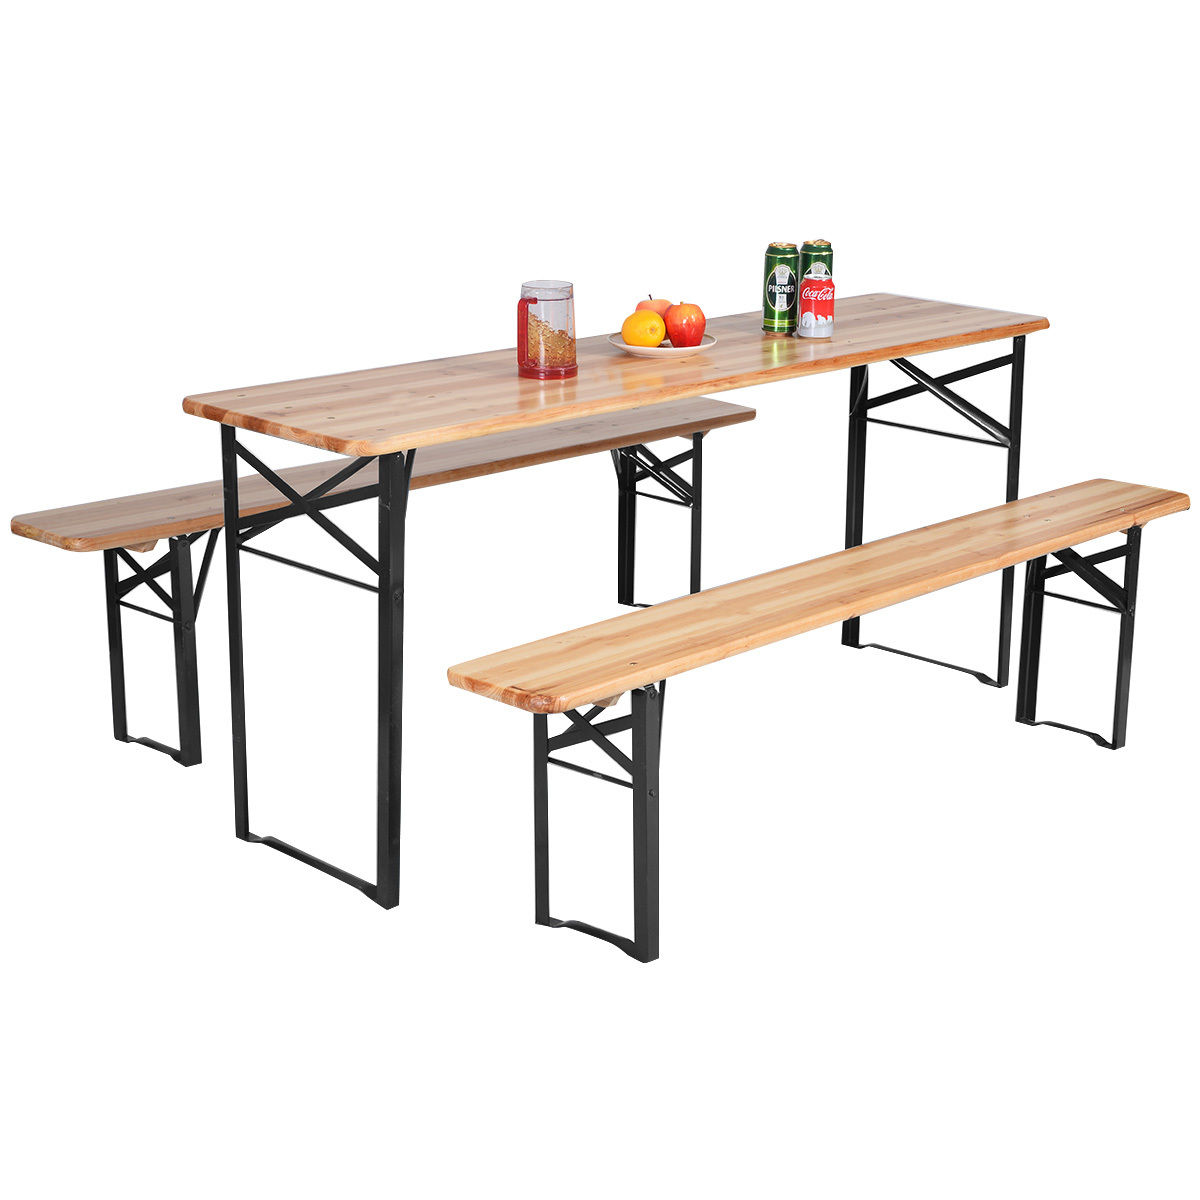 Costway 3 PCS Beer Table Bench Set Folding Wooden Top Picnic Table Patio Garden by Costway